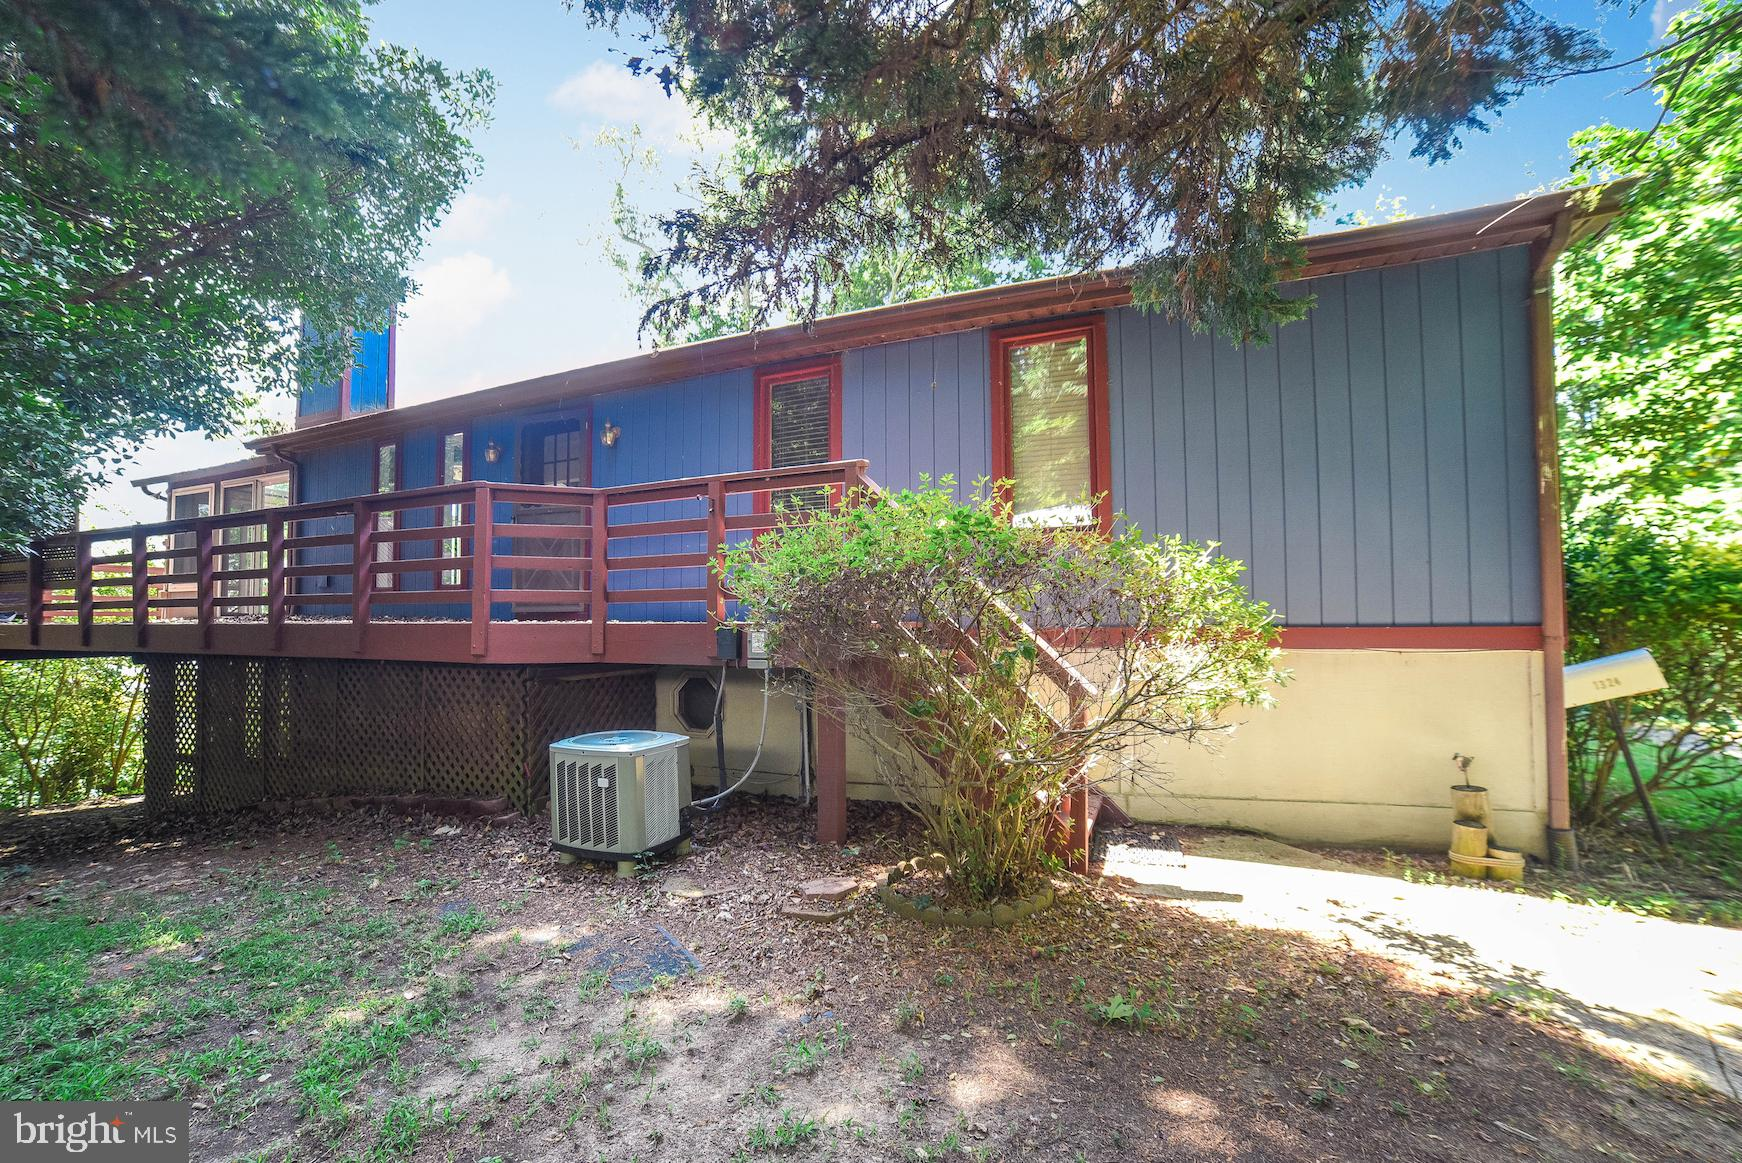 Waterfront rambler with 3 bedrooms and 3 full baths.  Home has large wrap around deck, sunroom and s